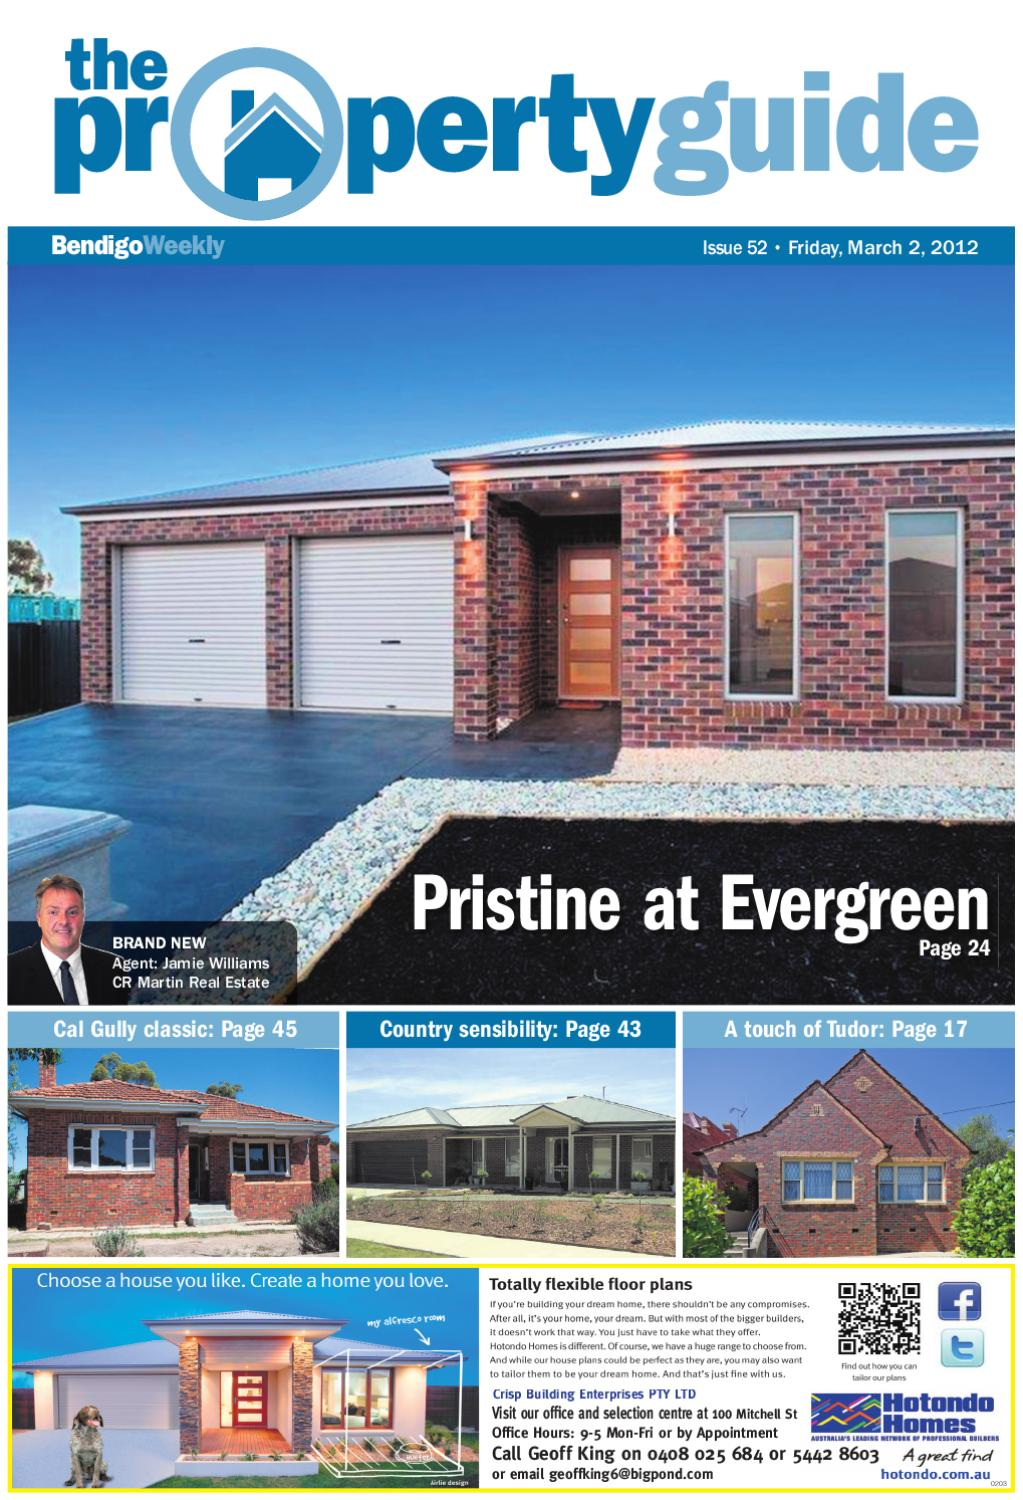 Bendigo Weekly Property Guide Issue 752 March